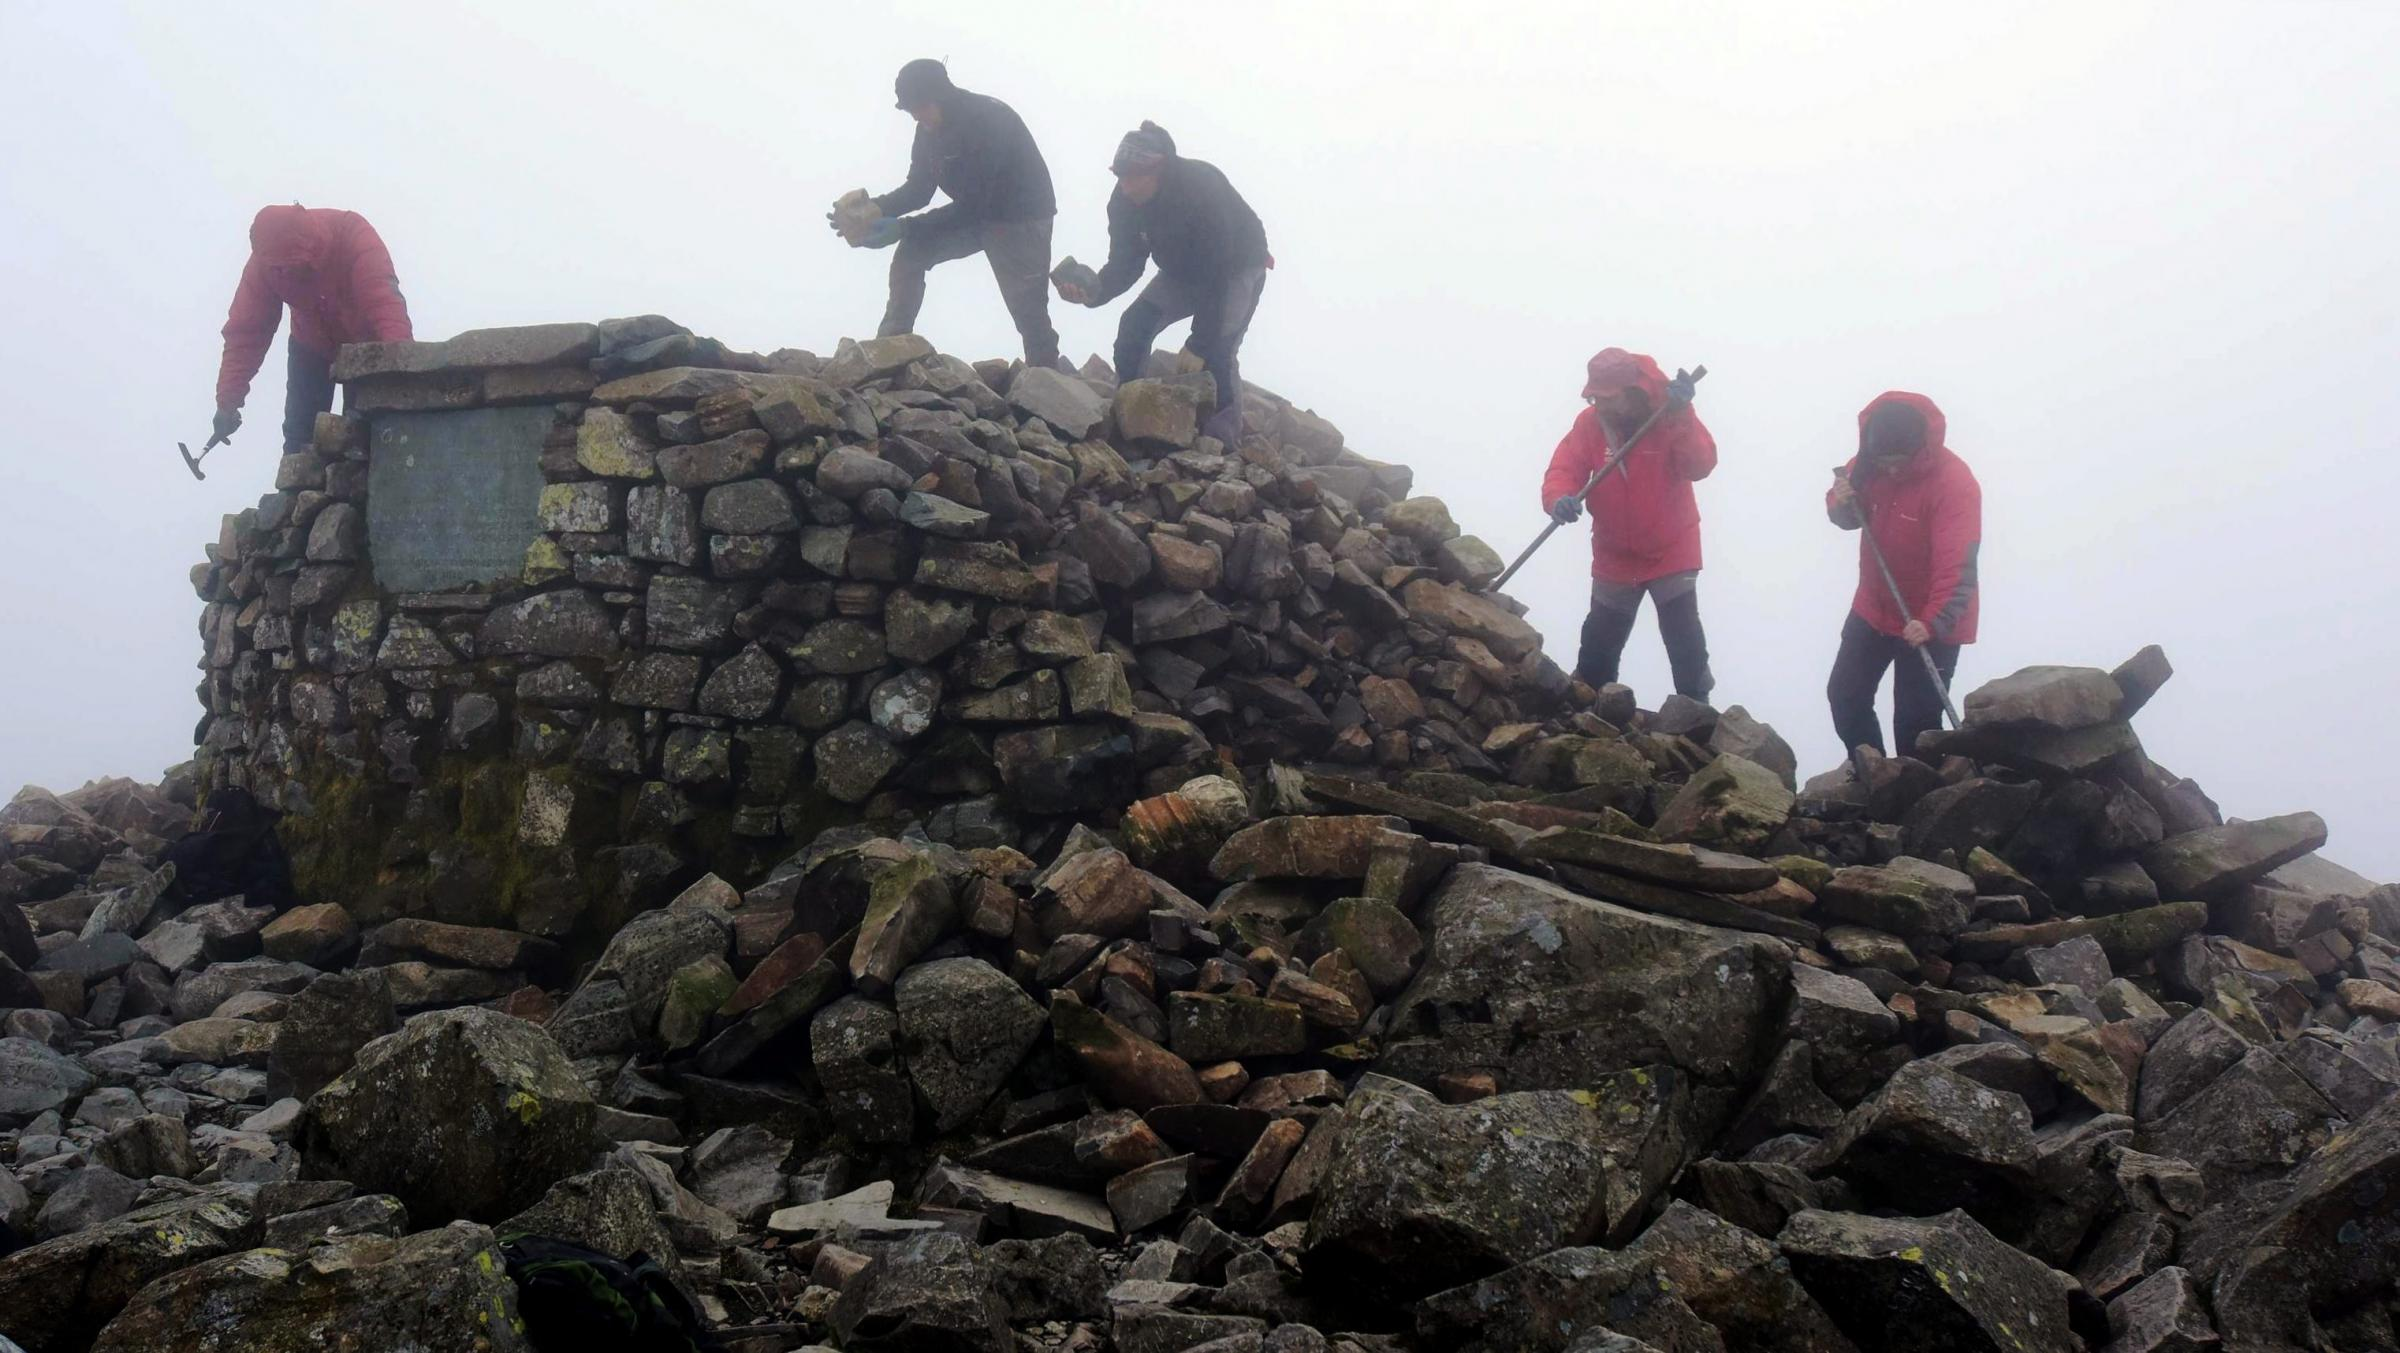 National Trust Rangers working on the cairn in 2018. C. Paul Kingston and National Trust